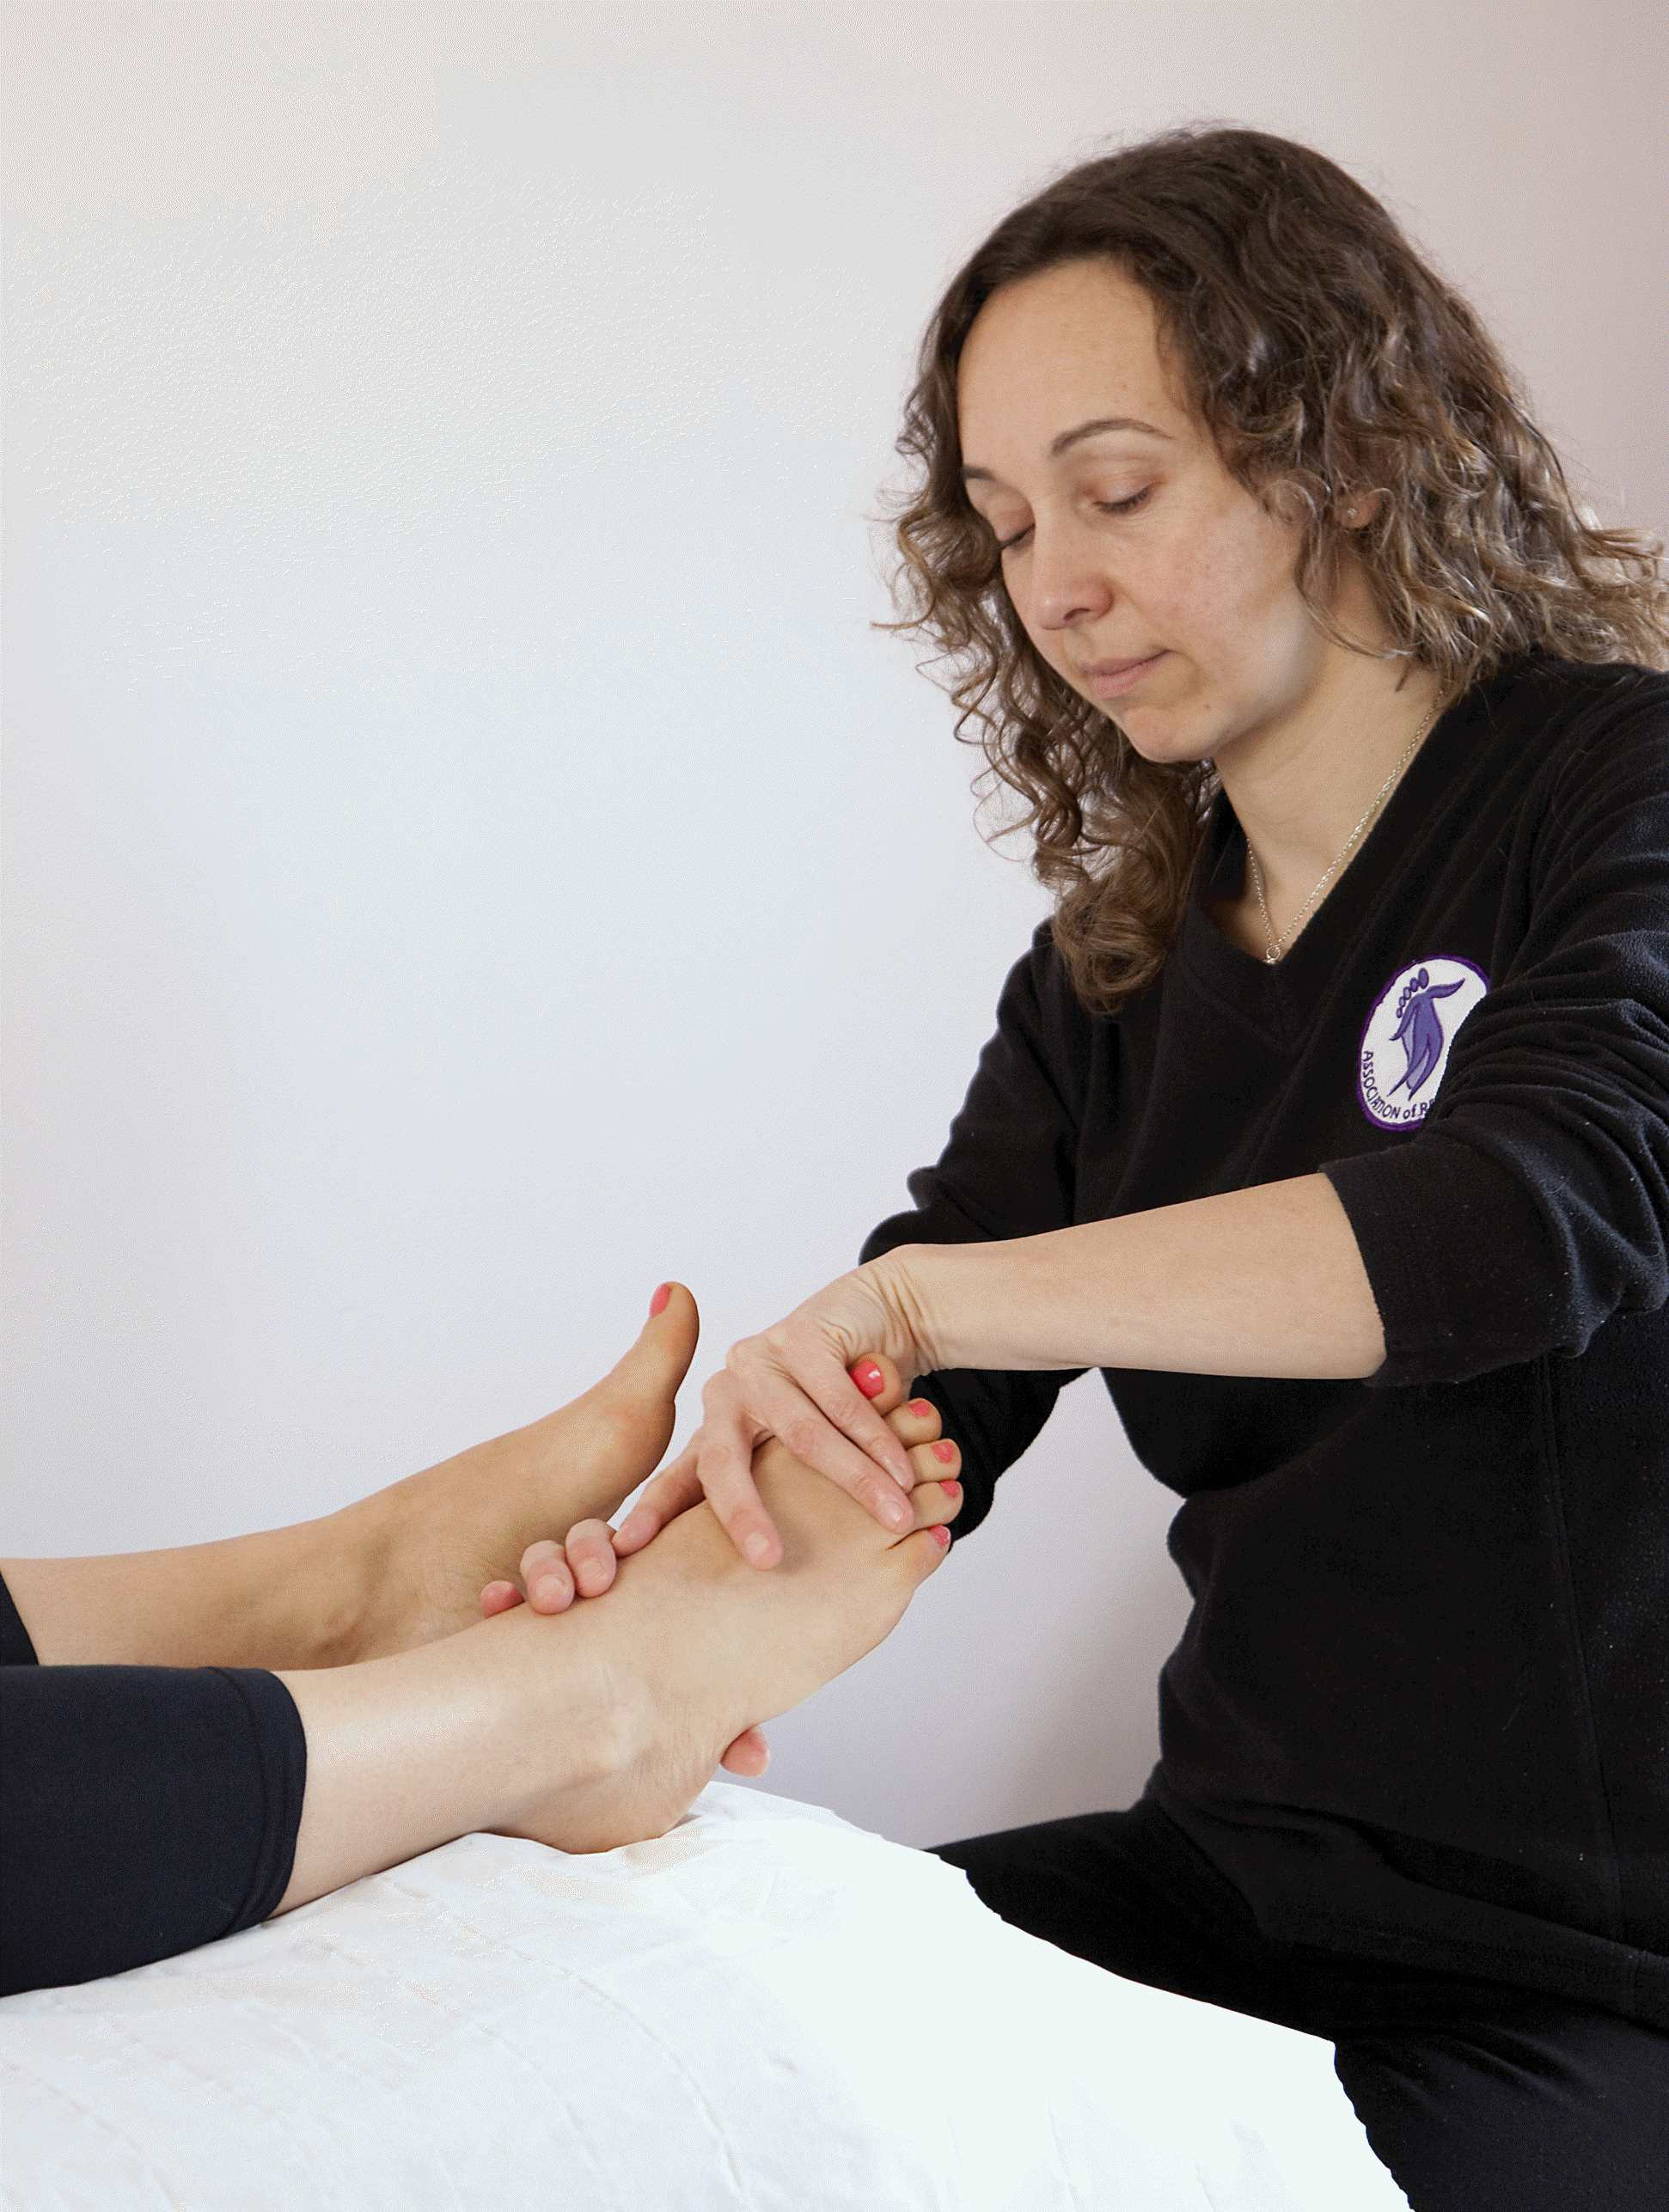 Marie doing reflexology feet2